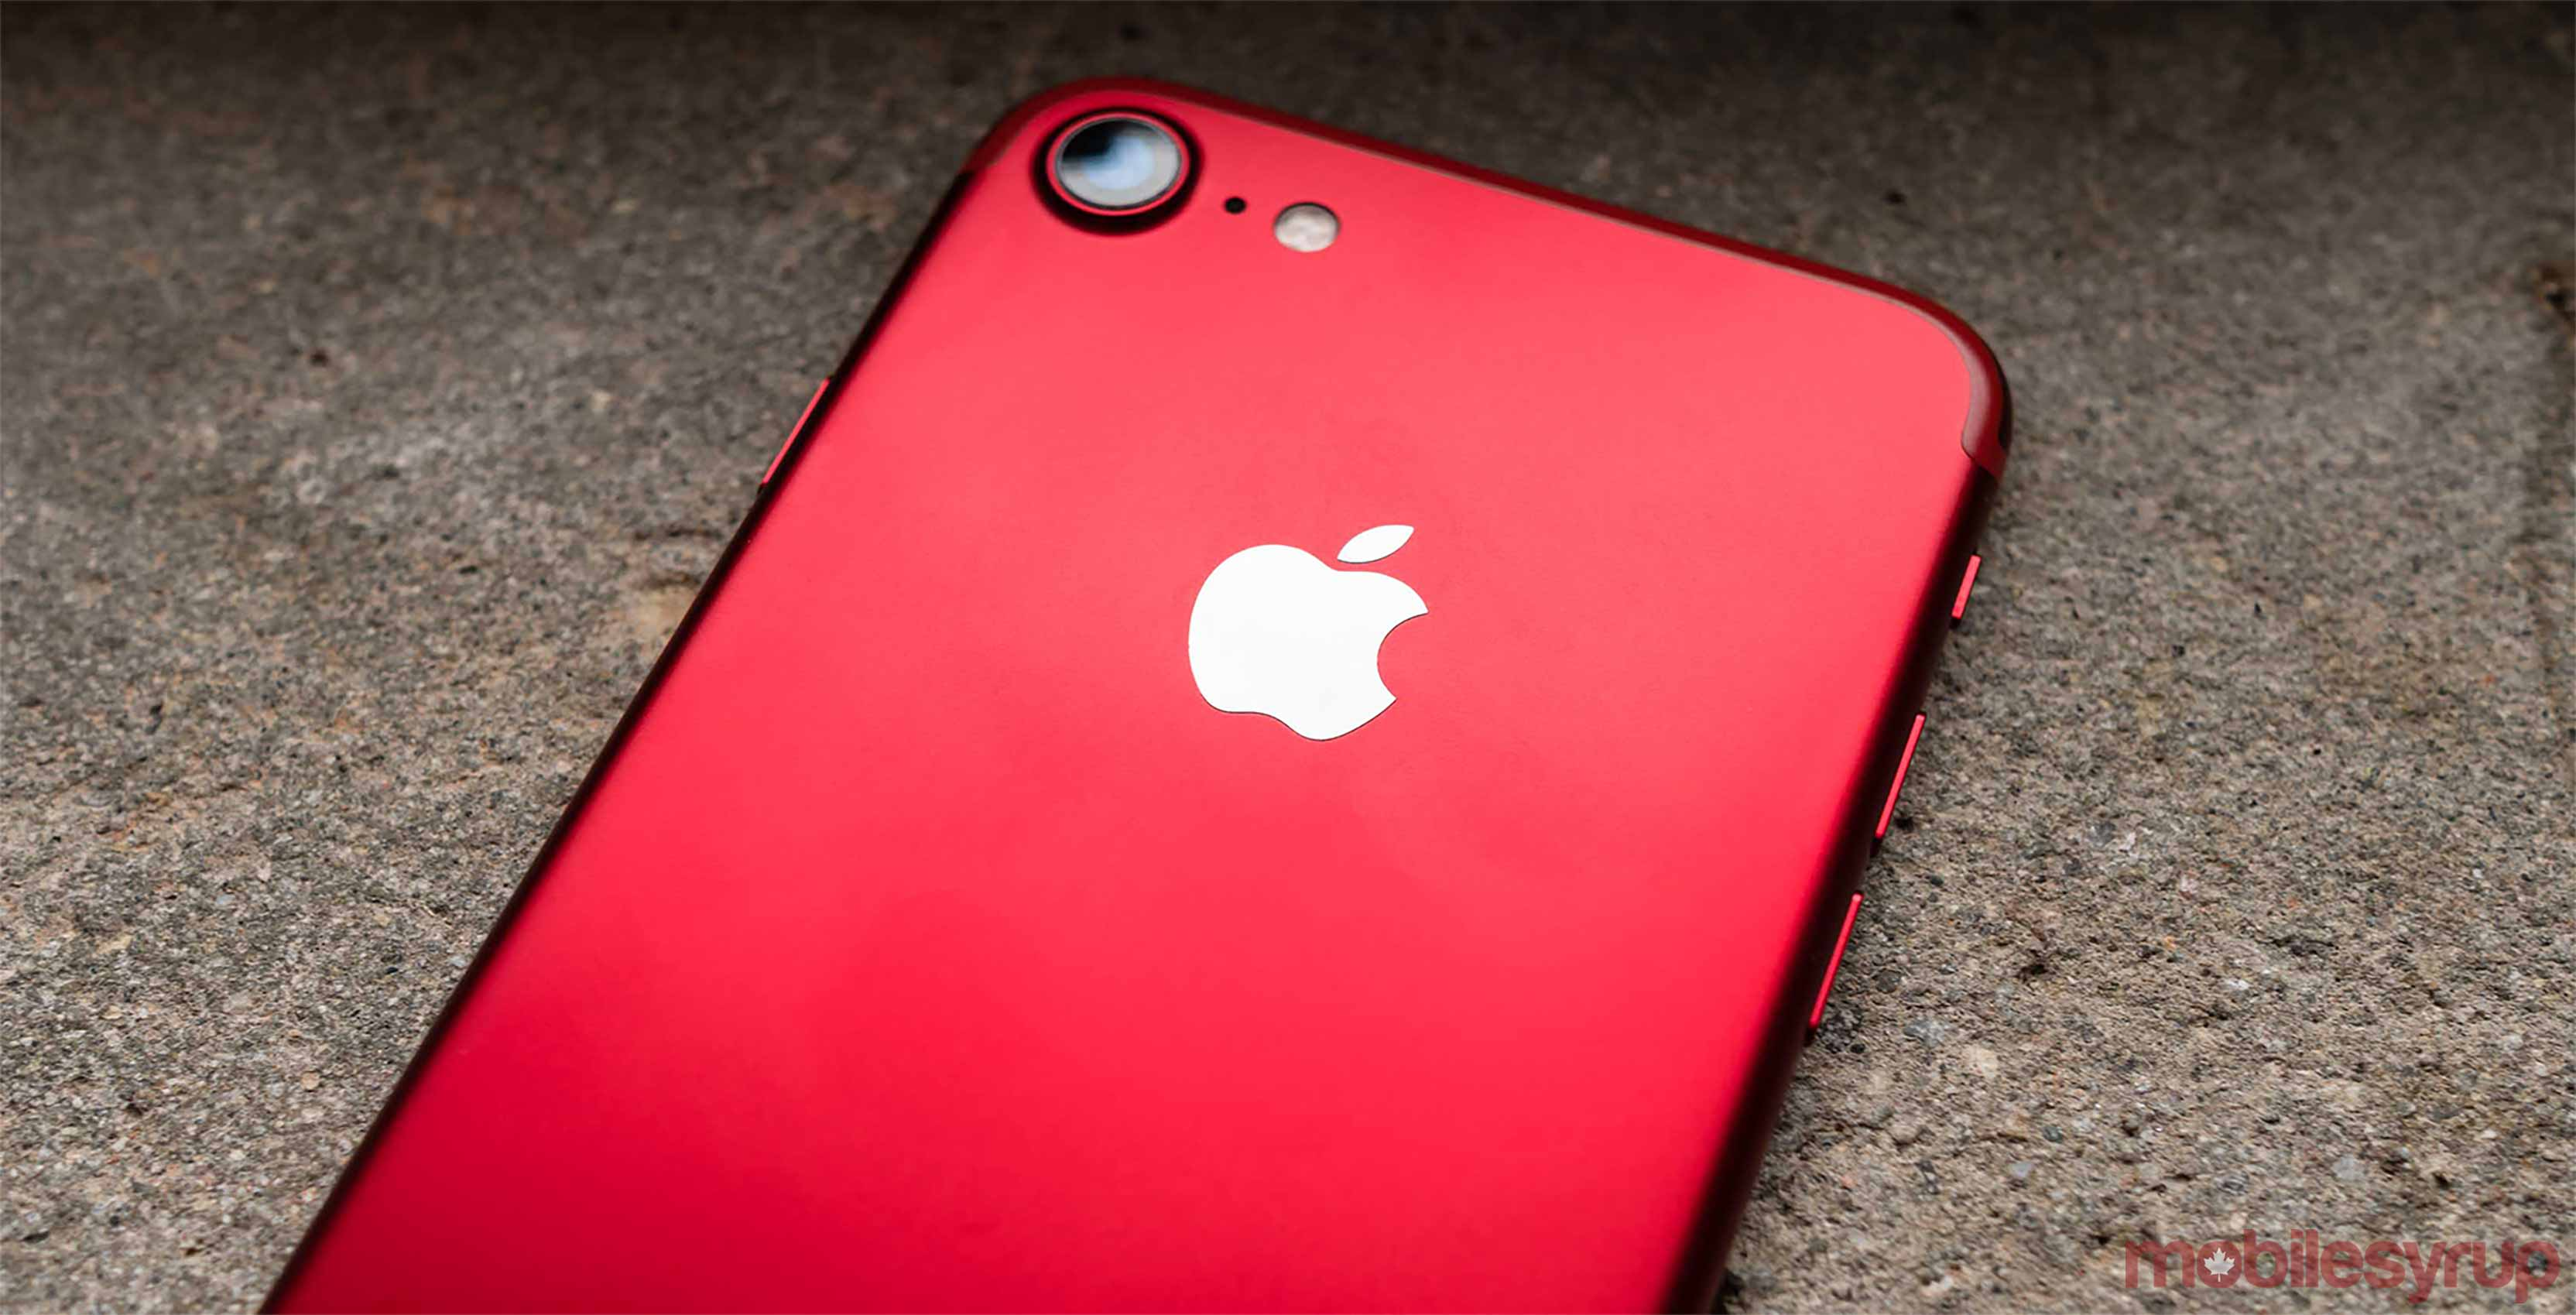 Back of Product Red iPhone 7